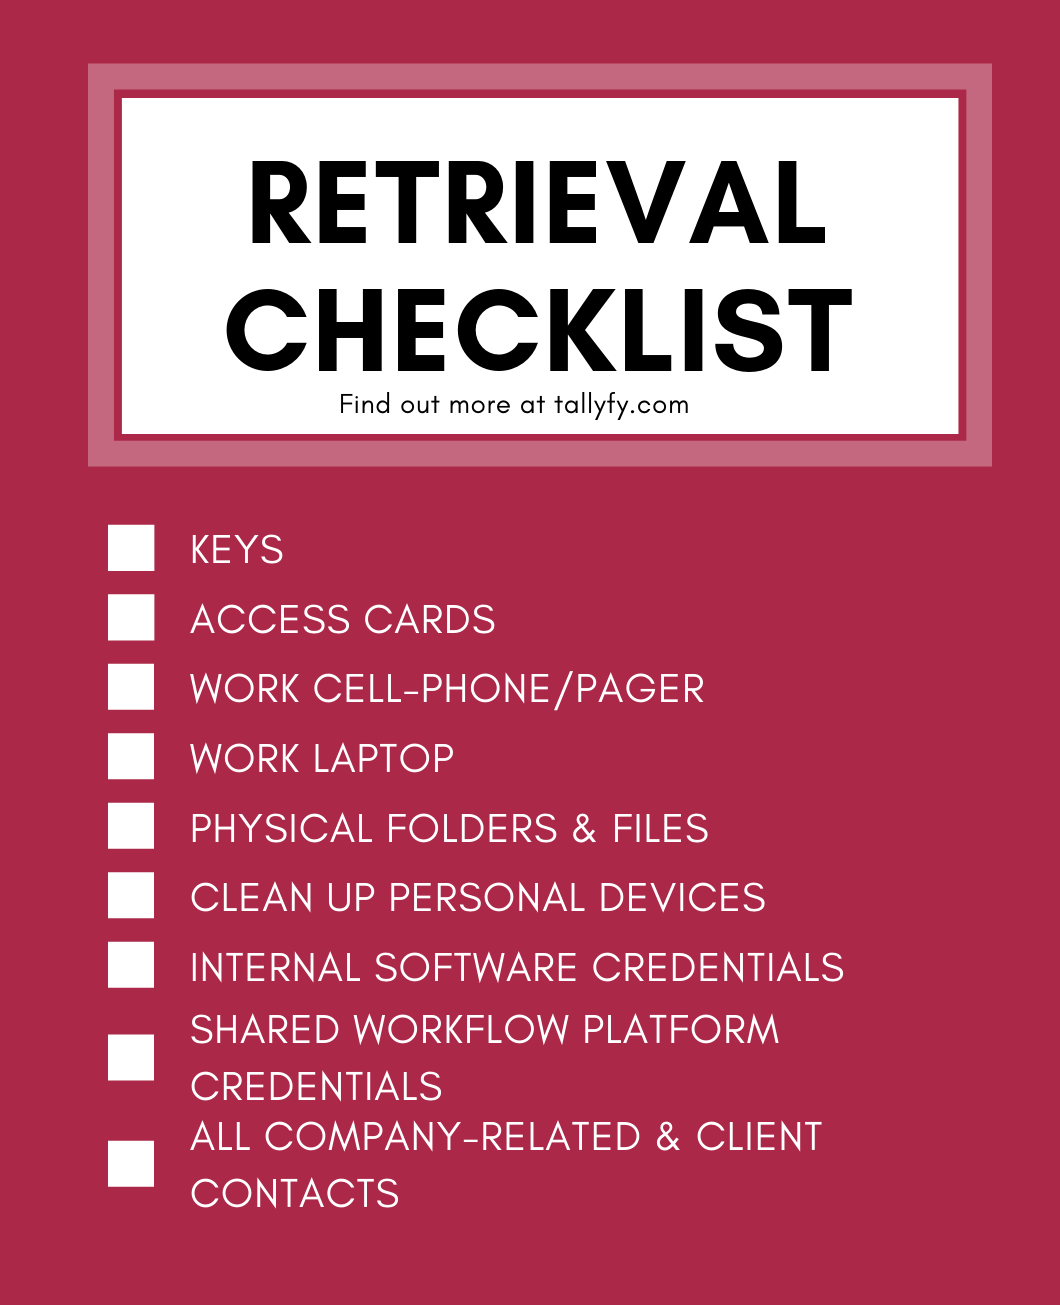 employee offboarding retrieval checklist